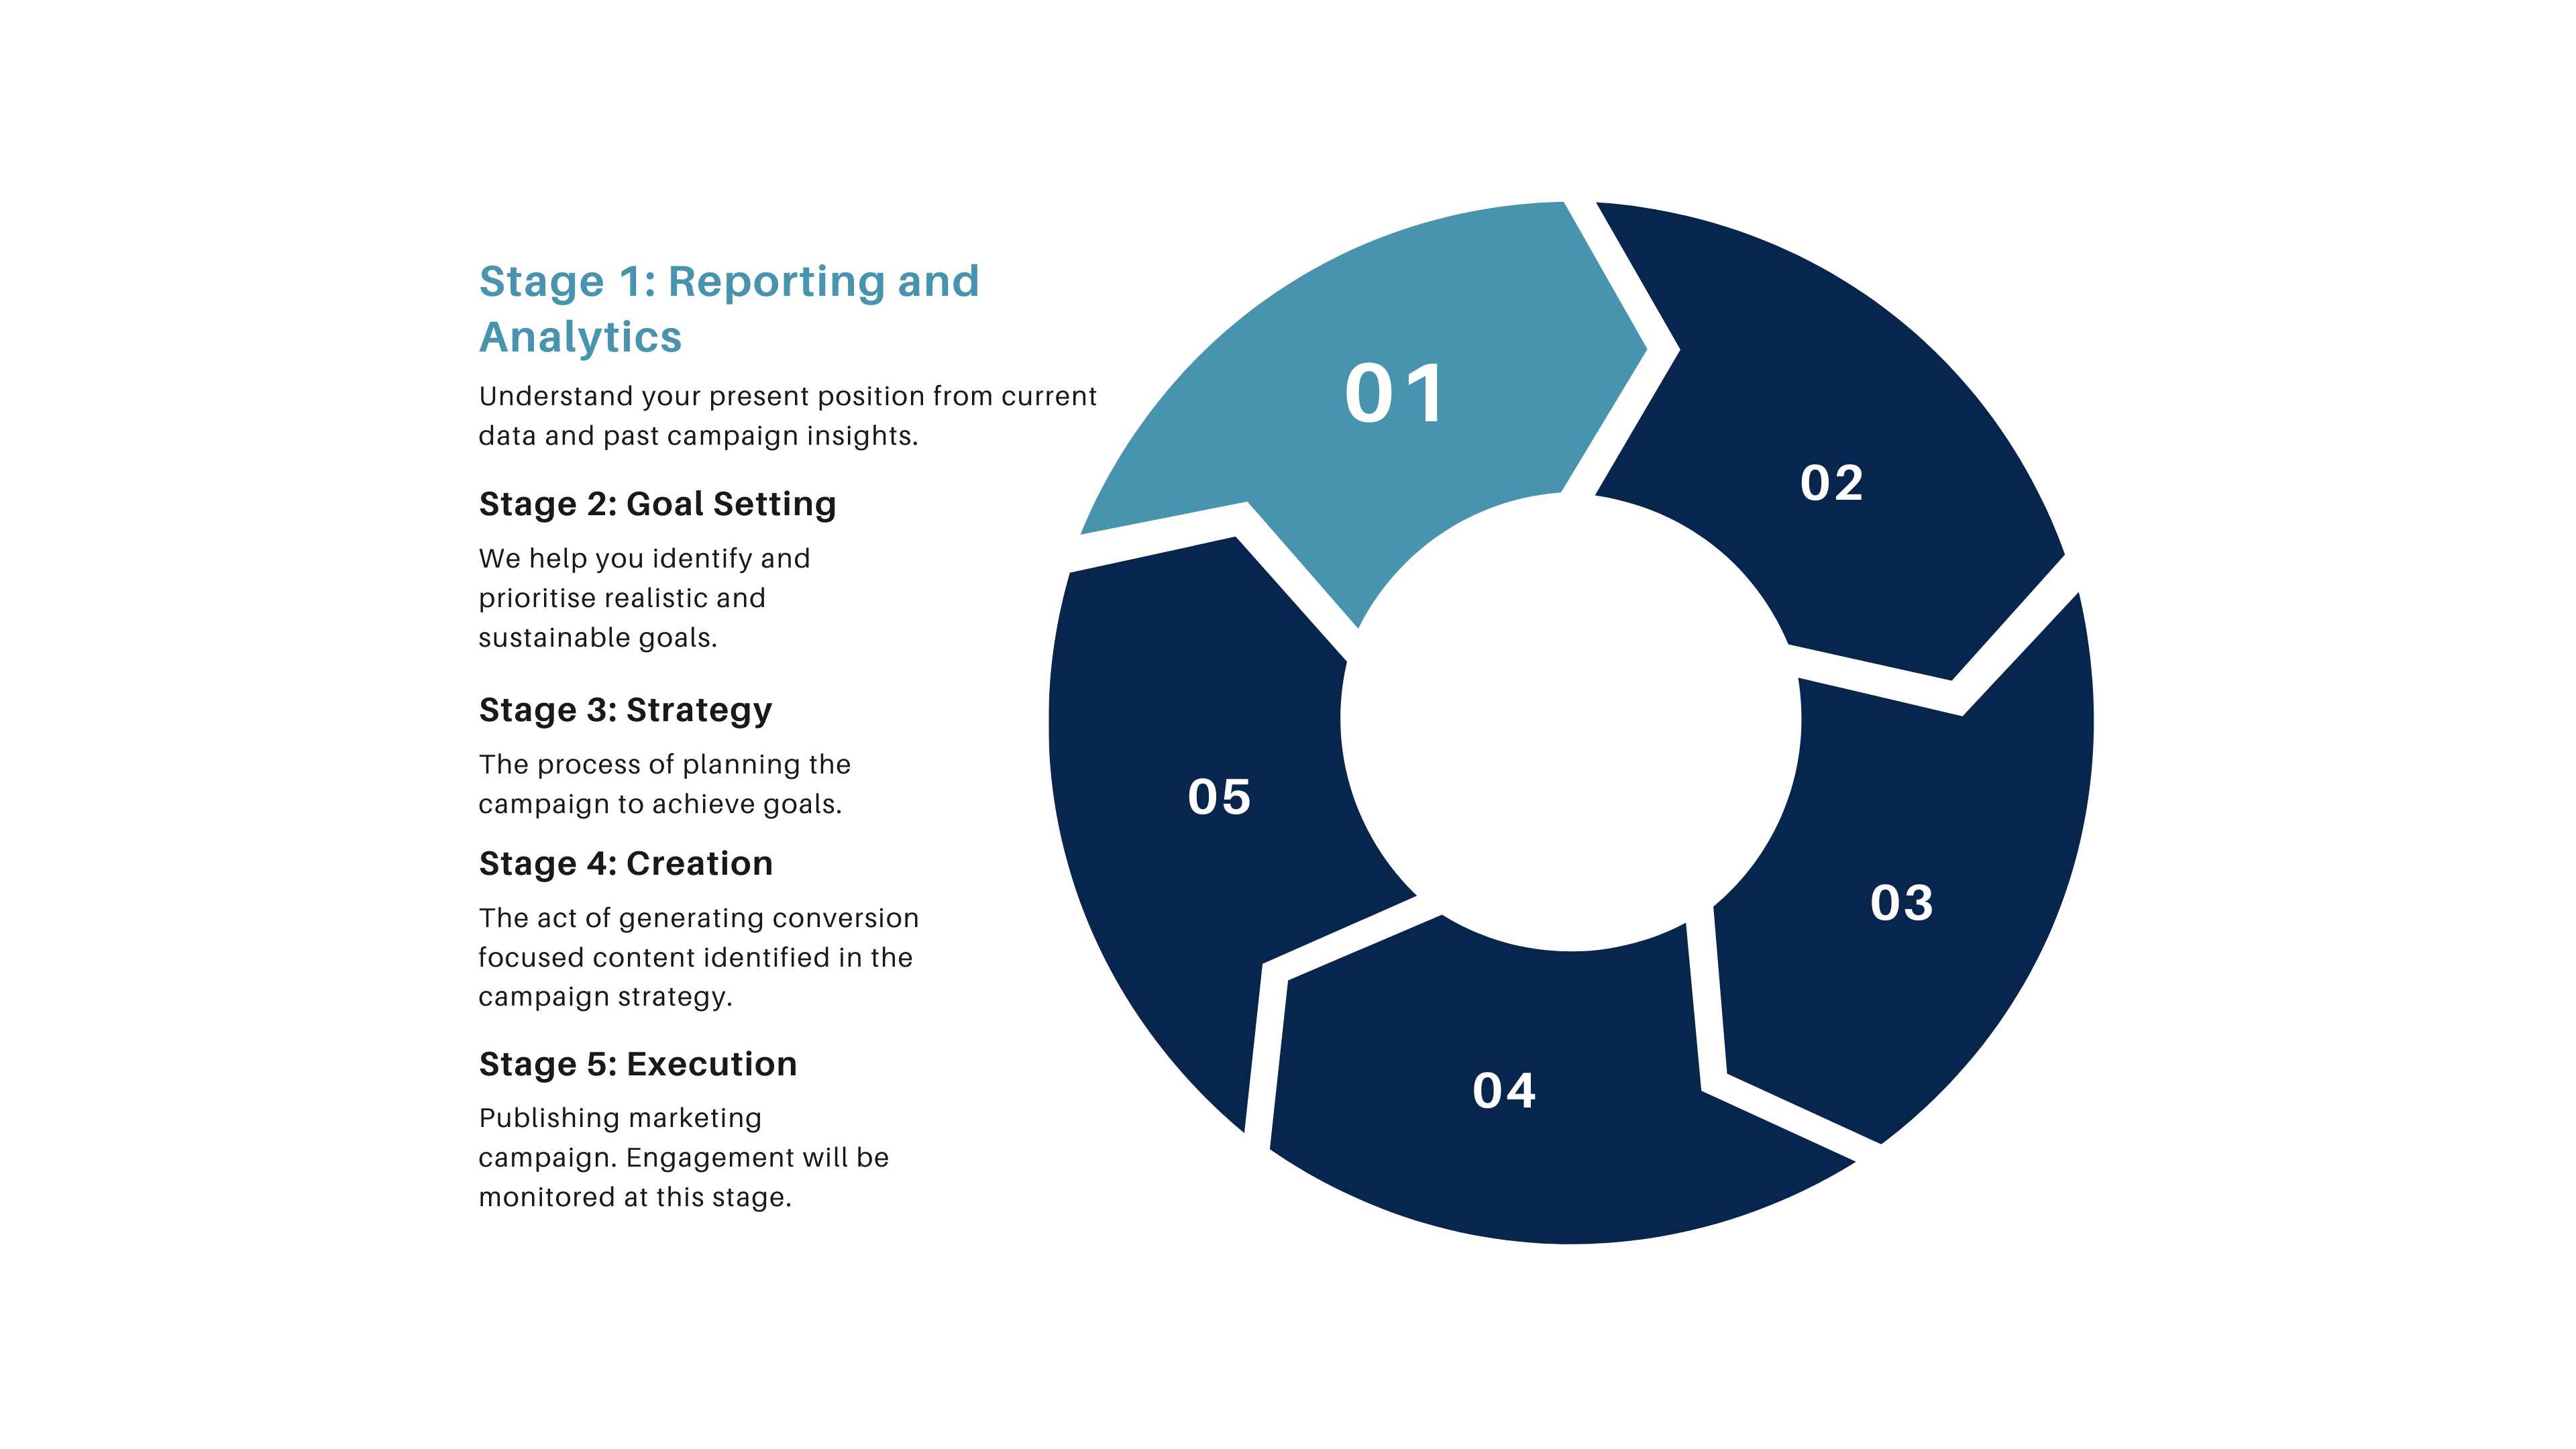 Reporting and Analytics - Cycle (1)